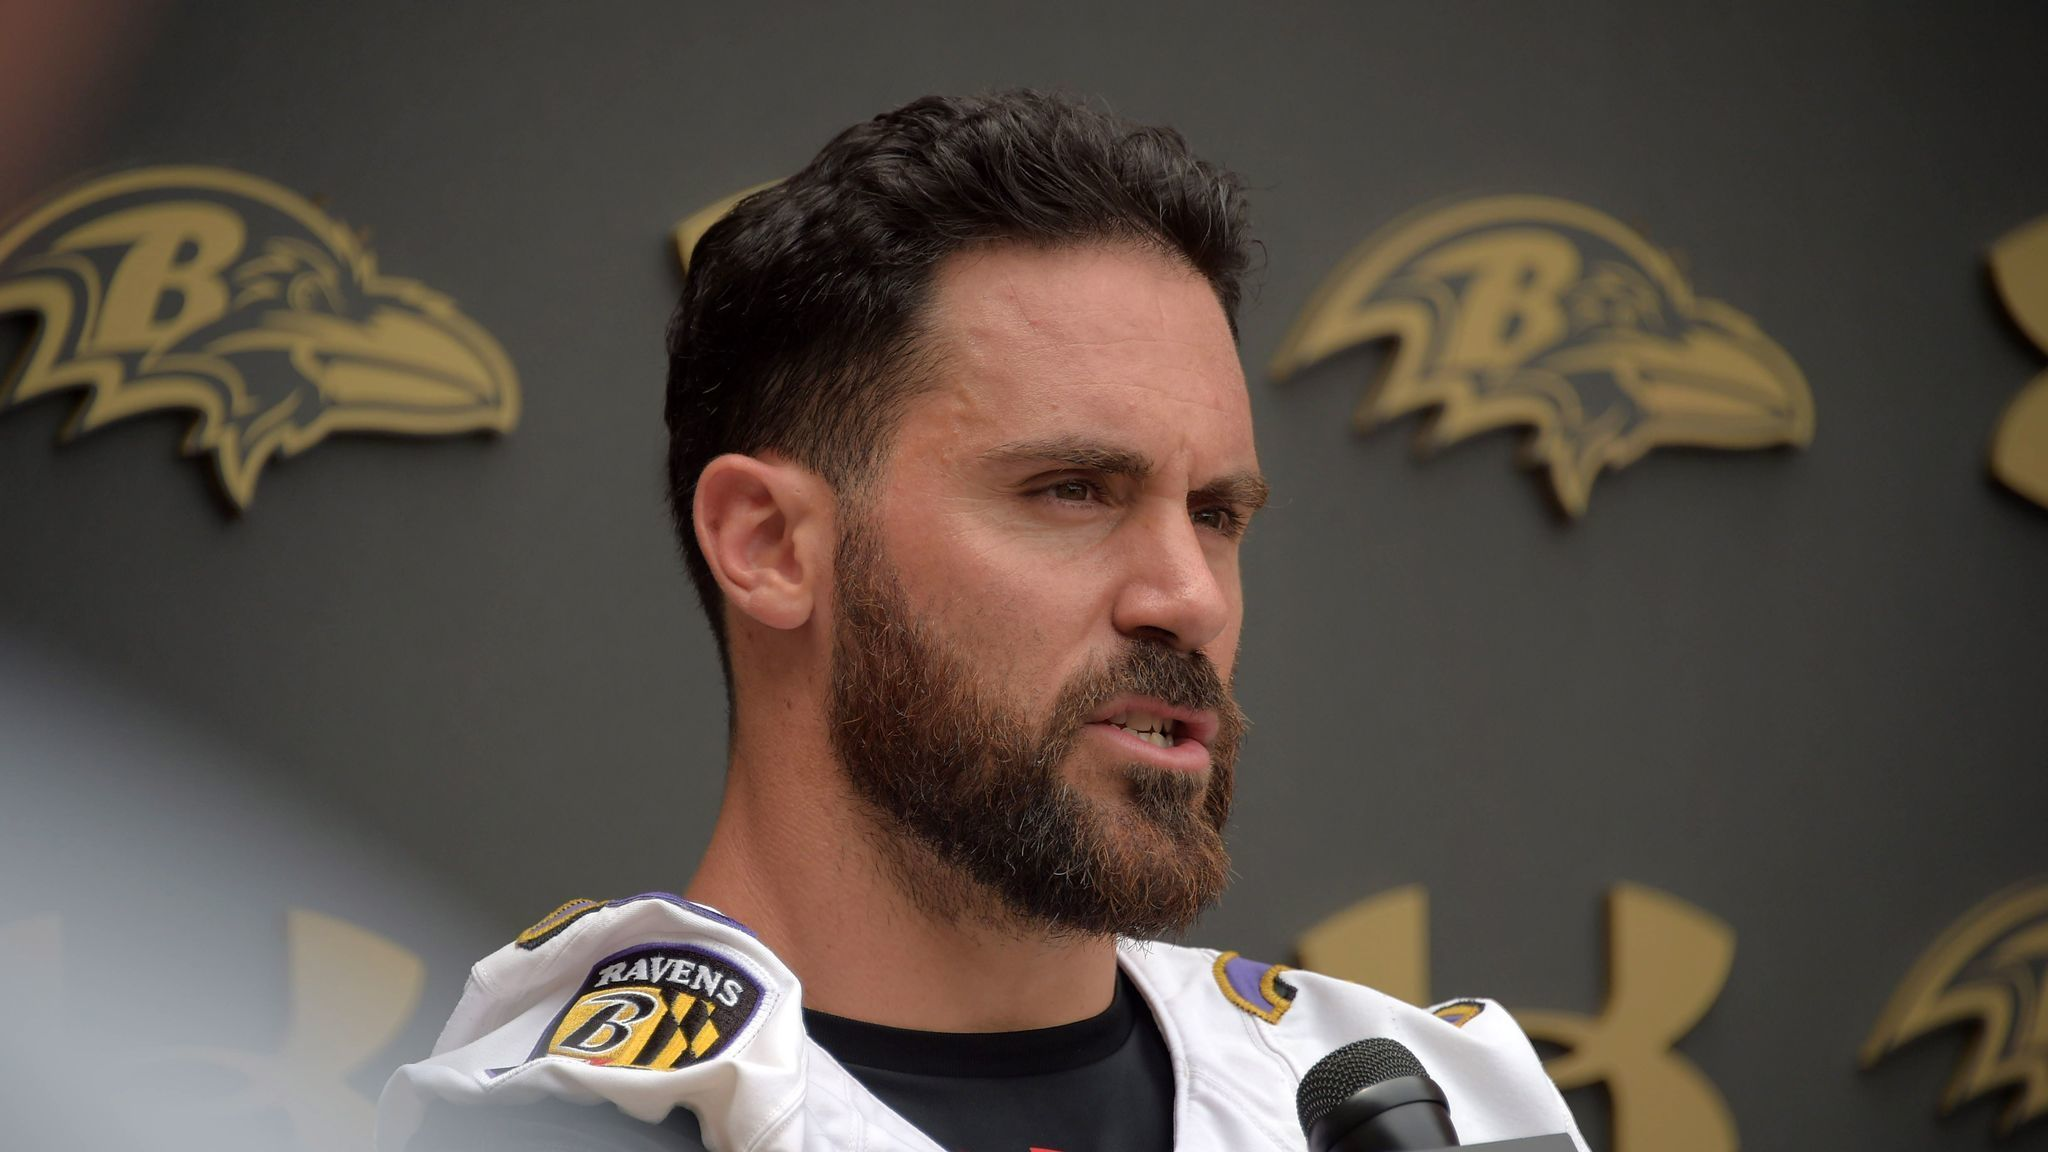 Ravens safety Eric Weddle thumbs nose at age but acknowledges he